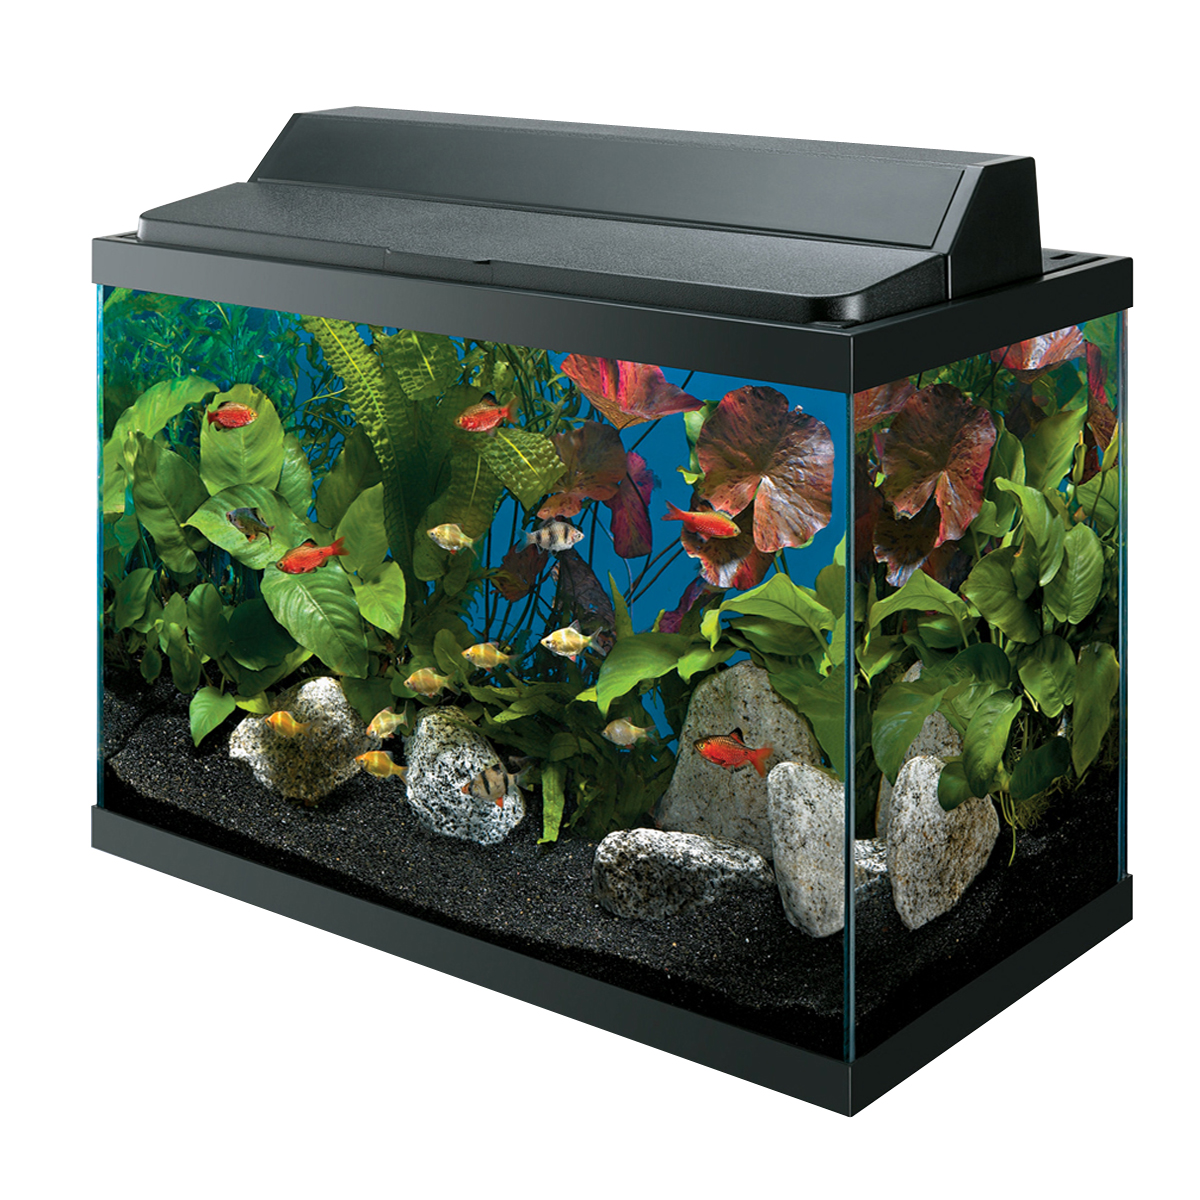 Fish specials wilmette pet center for Aqueon fish tank